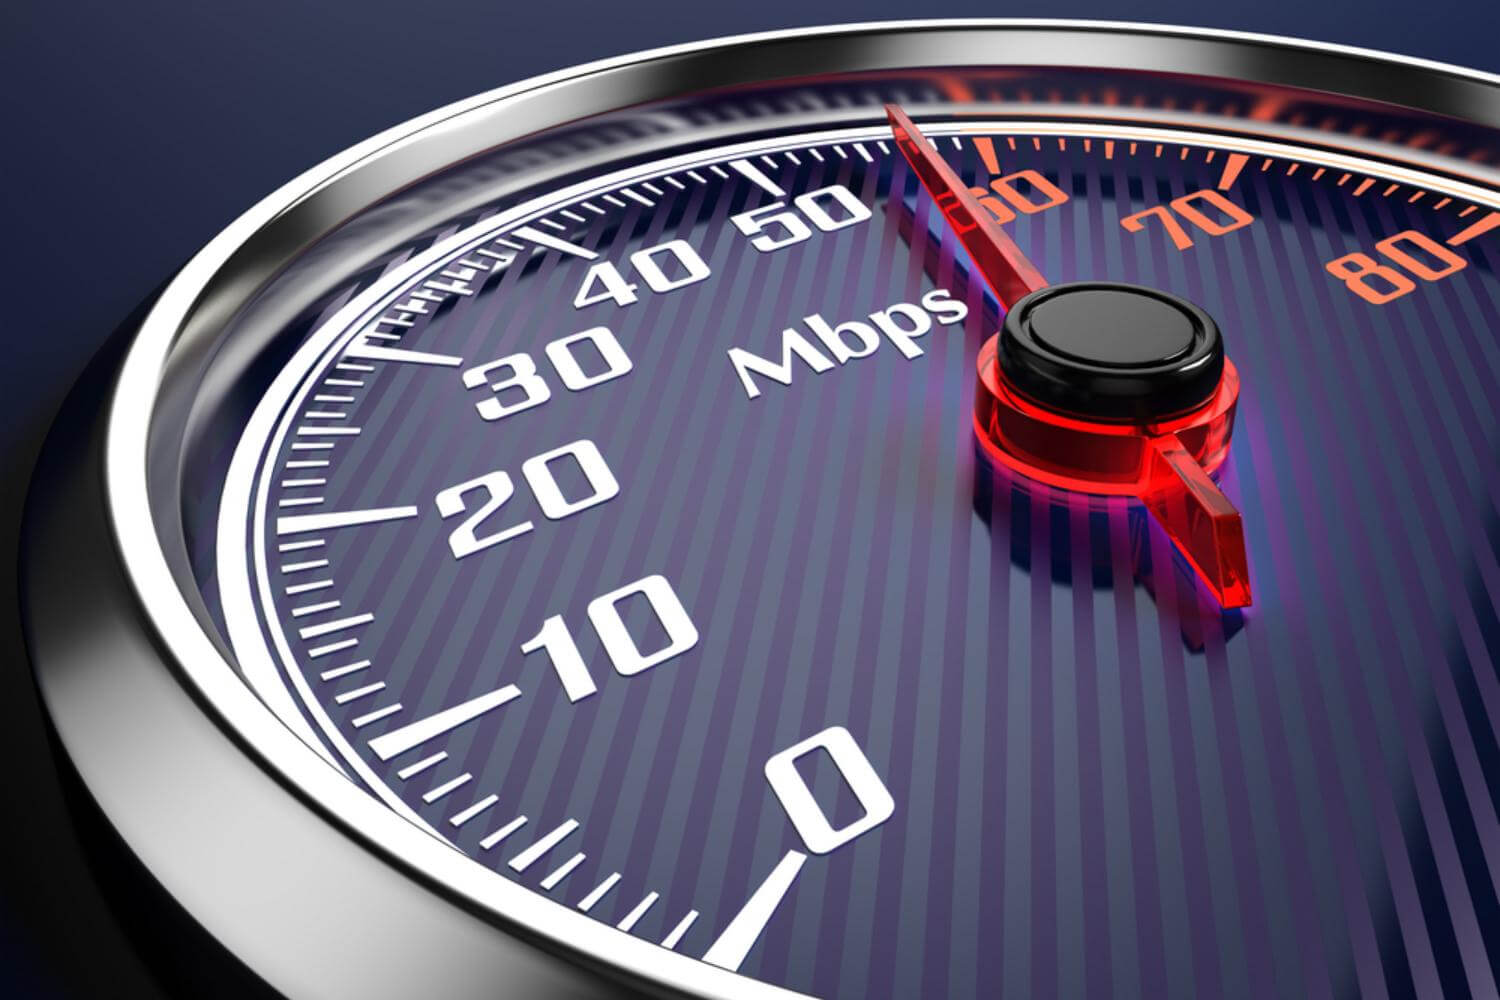 Clampdown on 'misleading' advertised broadband speeds